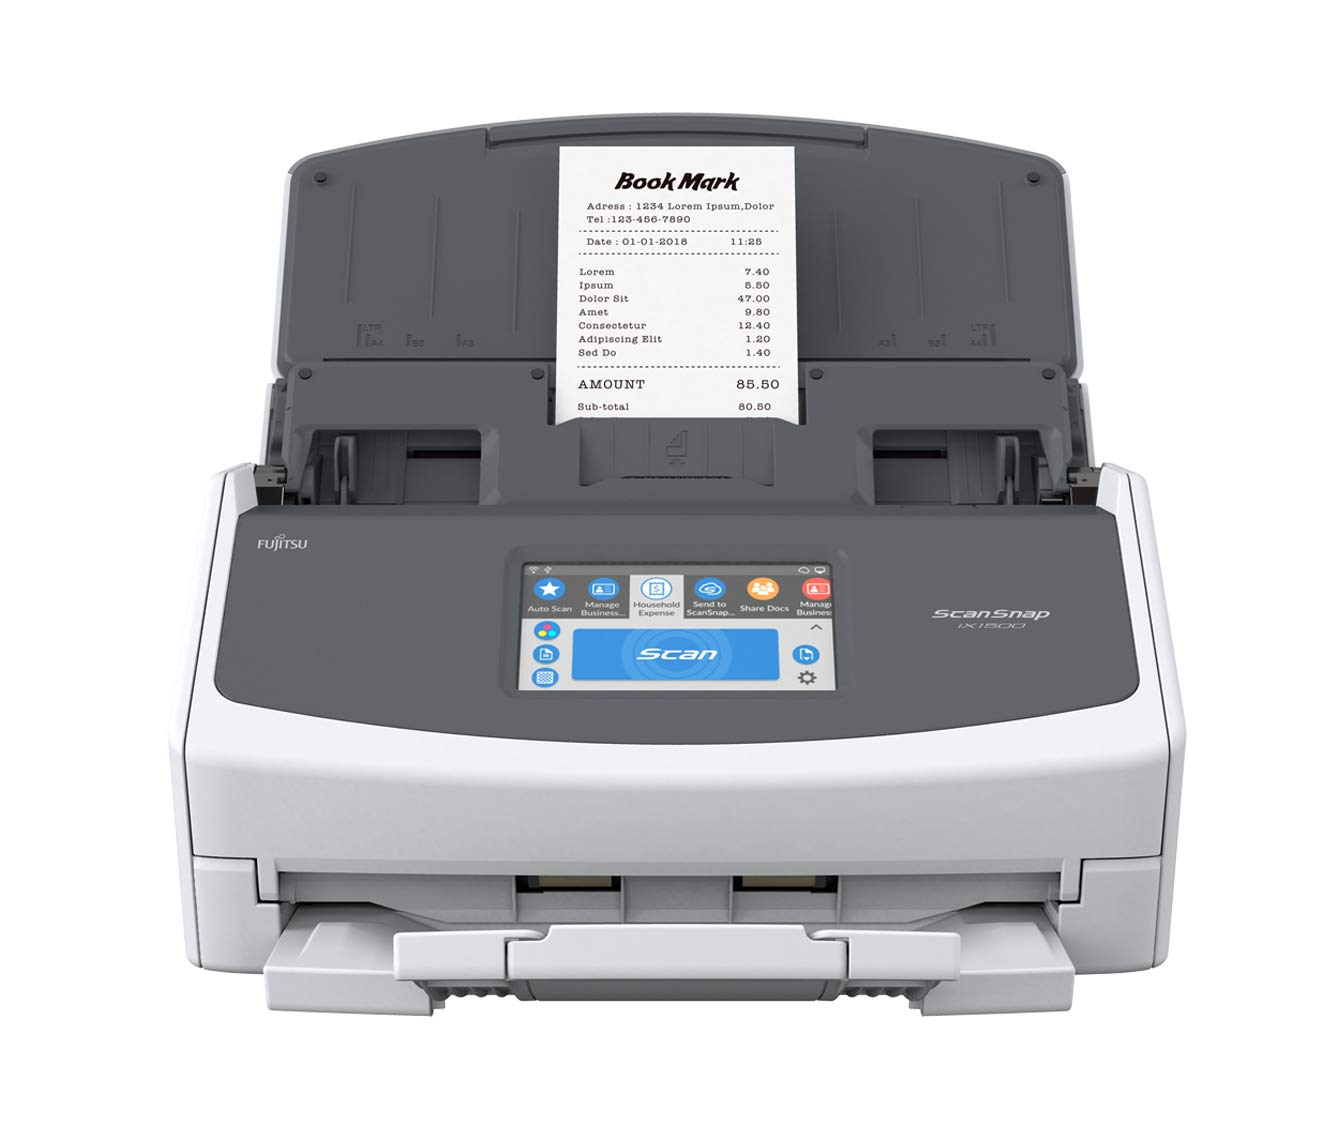 Fujitsu ScanSnap iX1500 Color Duplex Document Scanner with Touch Screen for Mac and PC [Current Model, 2018 Release] by Fujitsu (Image #5)